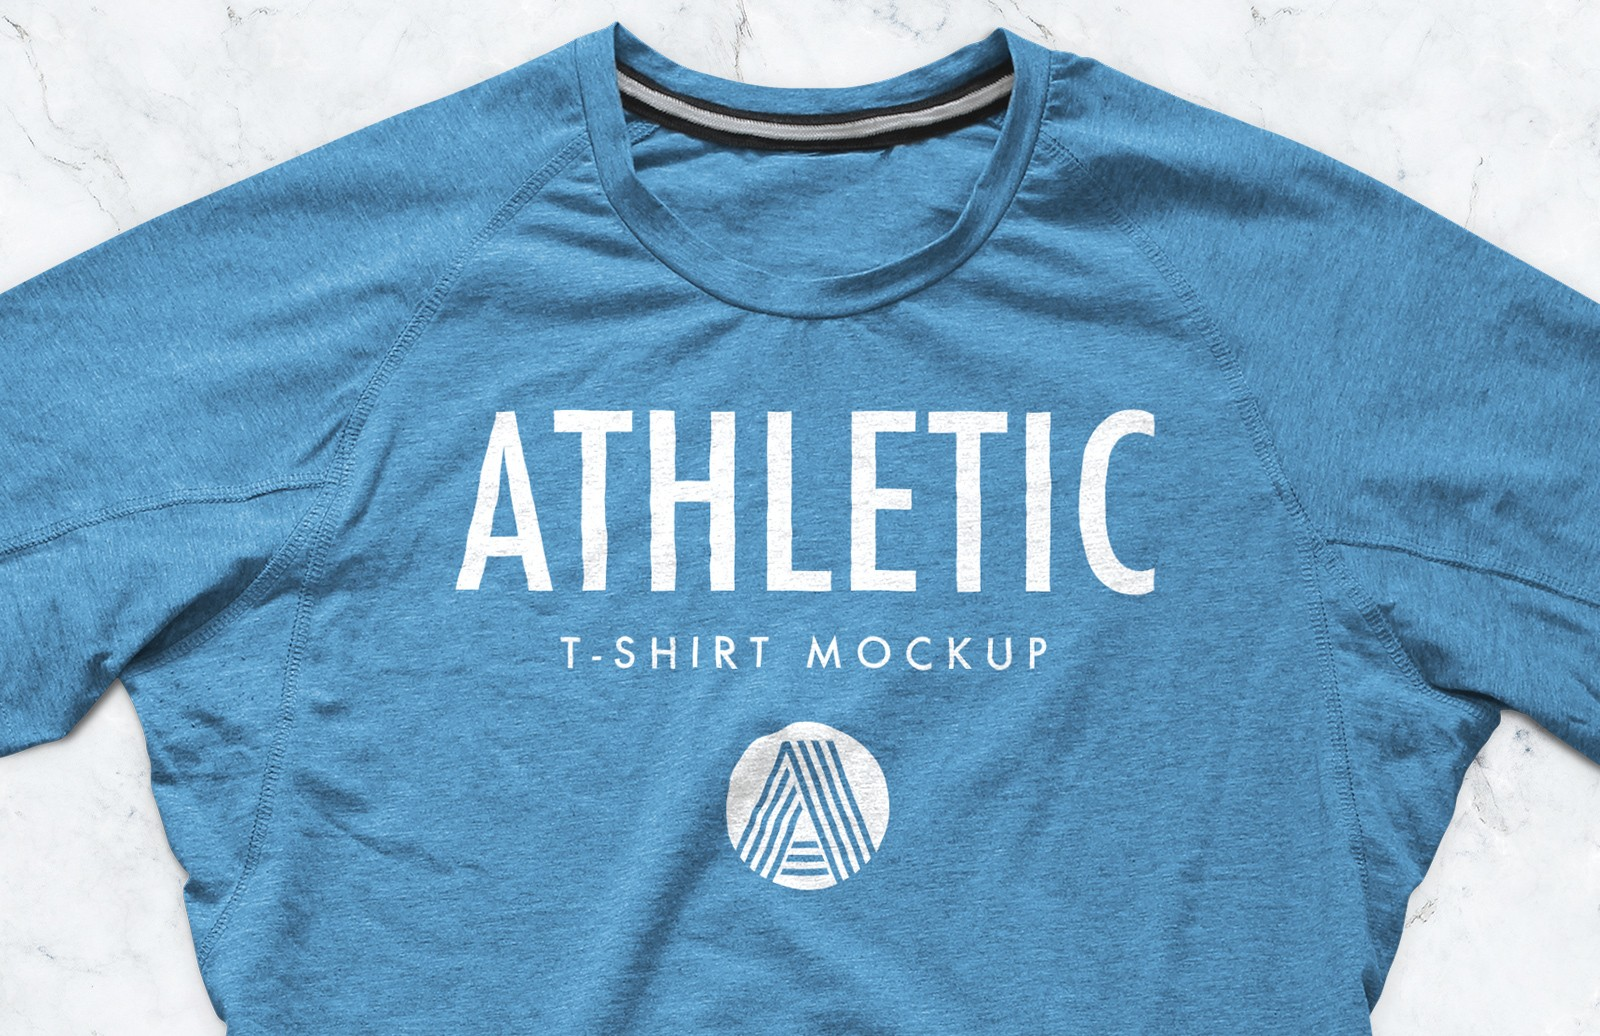 Athletic T-Shirt Mockup PSD